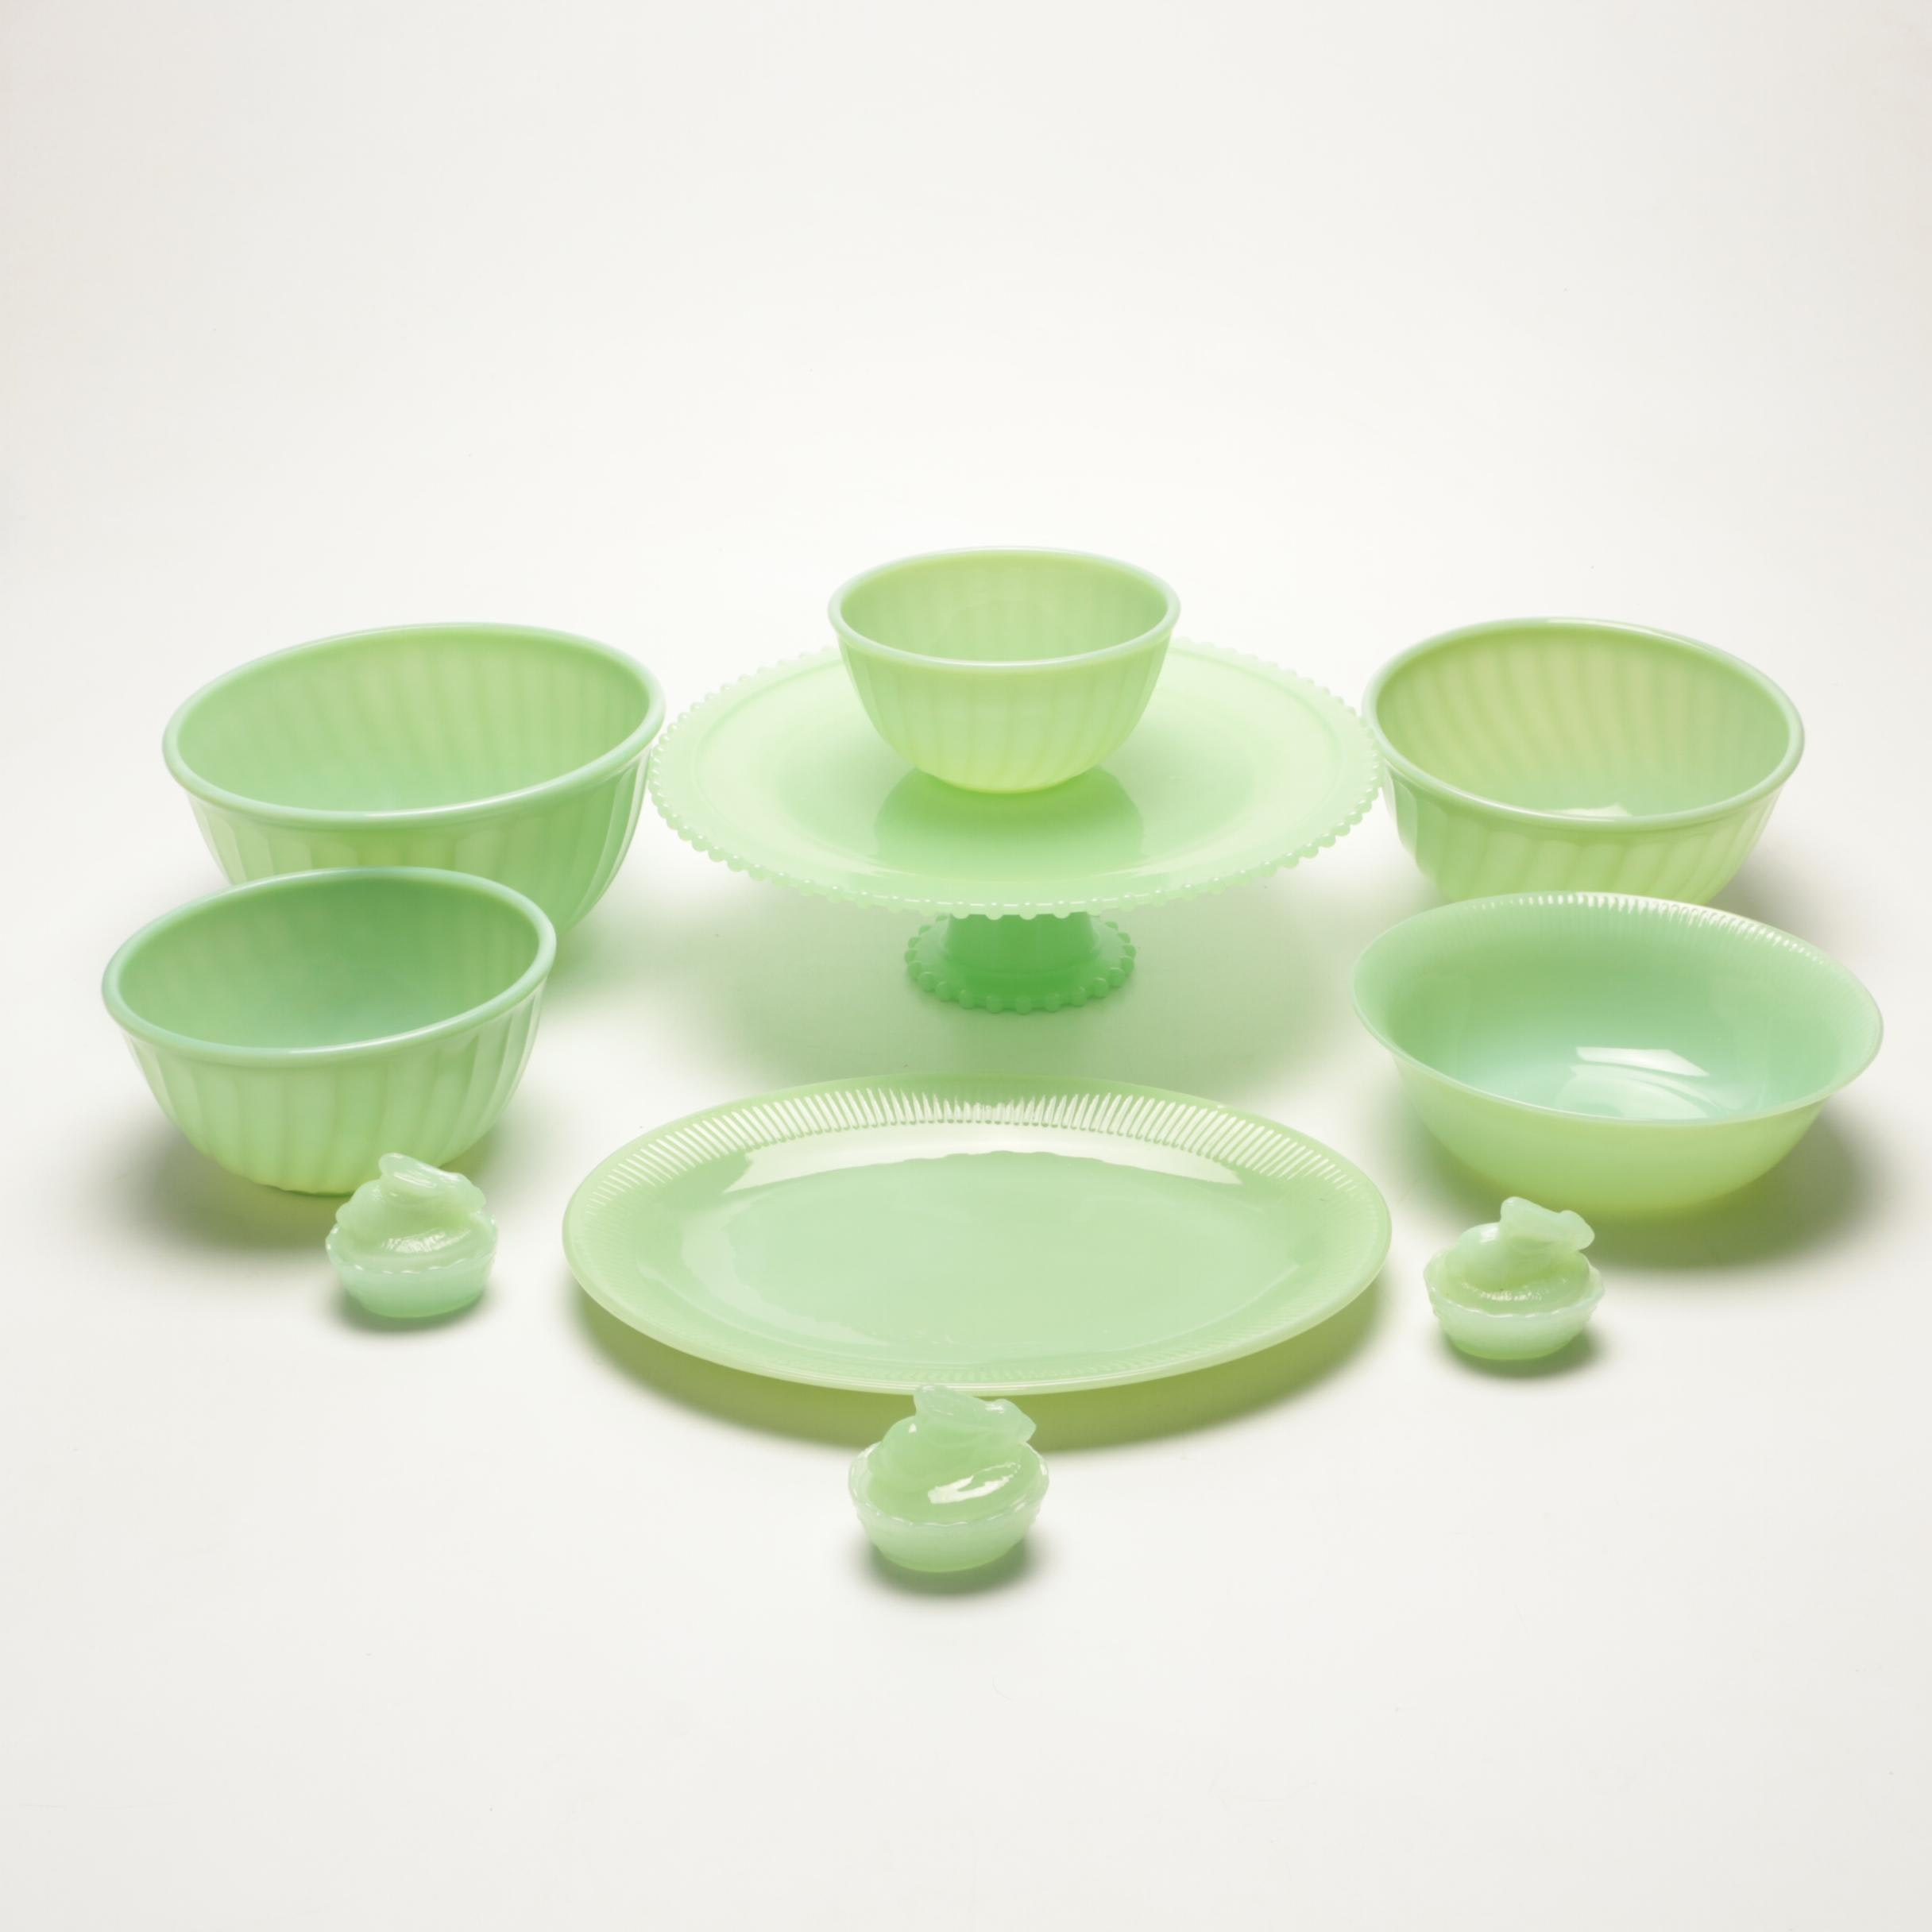 Vintage Green Glass Tableware and Serveware Featuring Fire King